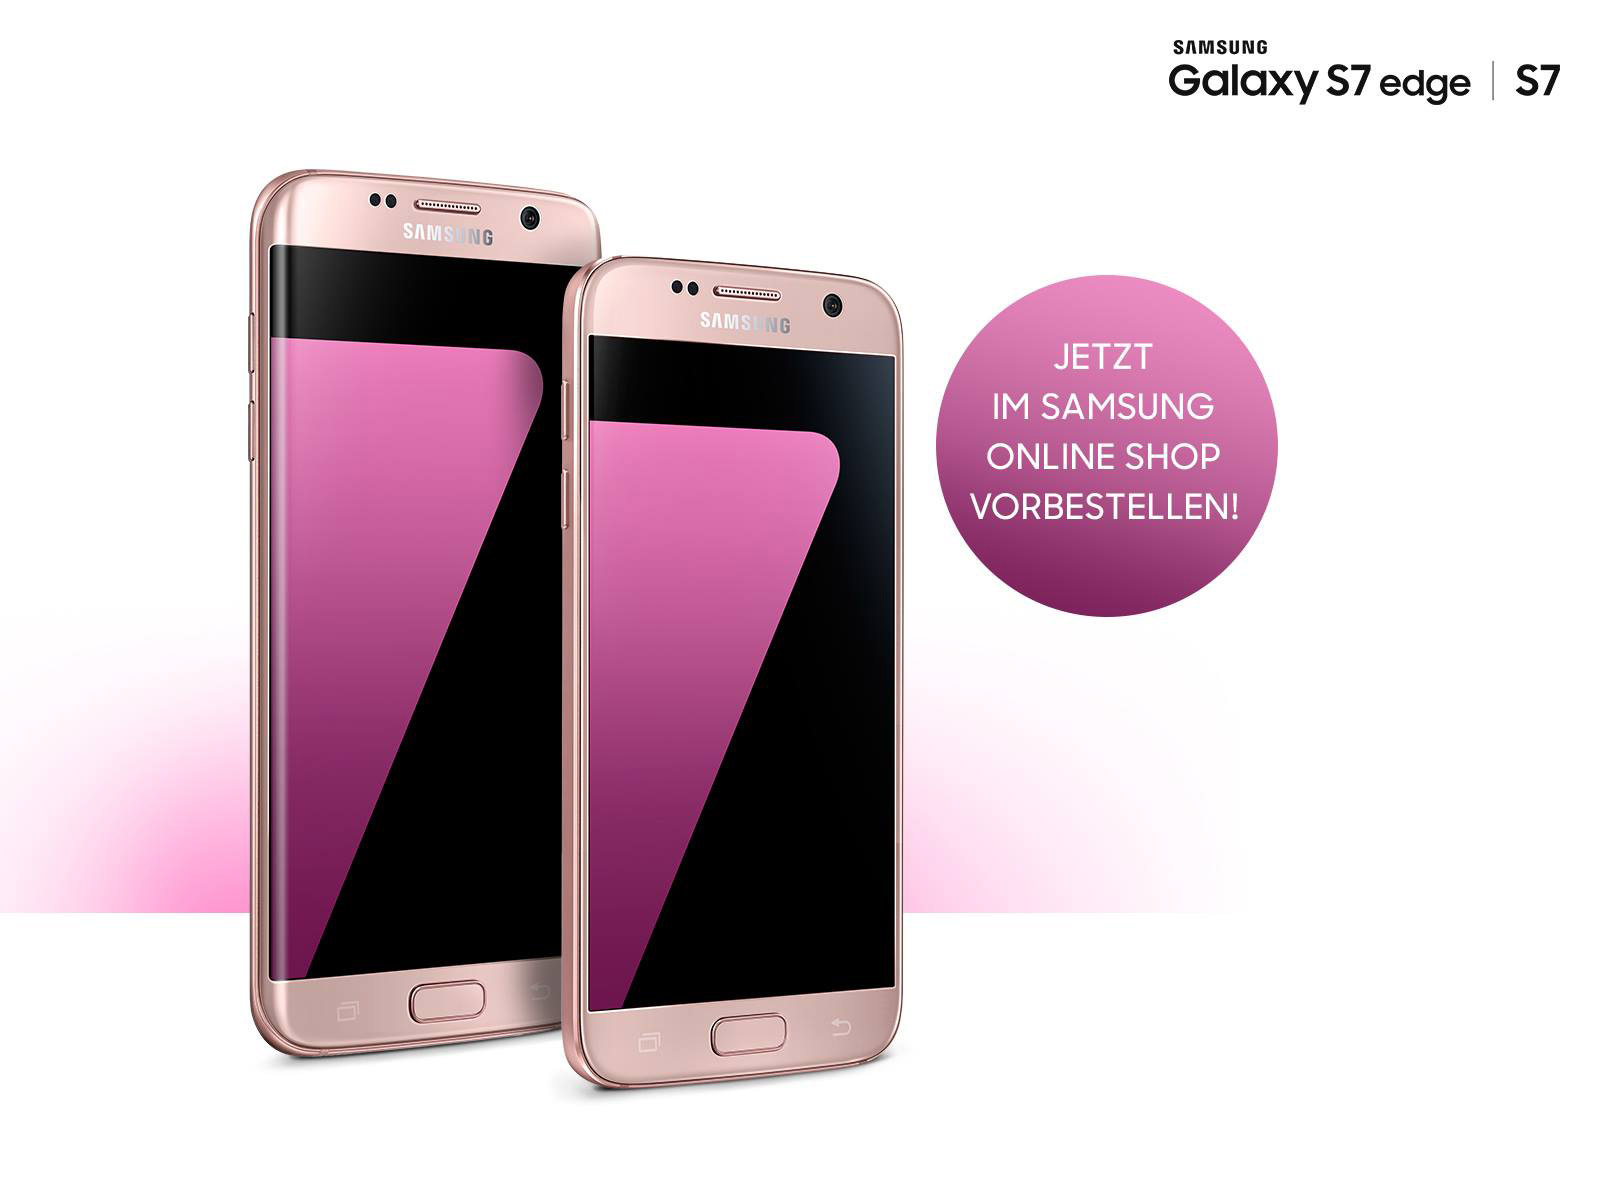 samsung galaxy s7 und galaxy s7 edge in der farbe pink gold ab mitte juni in deutschland all. Black Bedroom Furniture Sets. Home Design Ideas